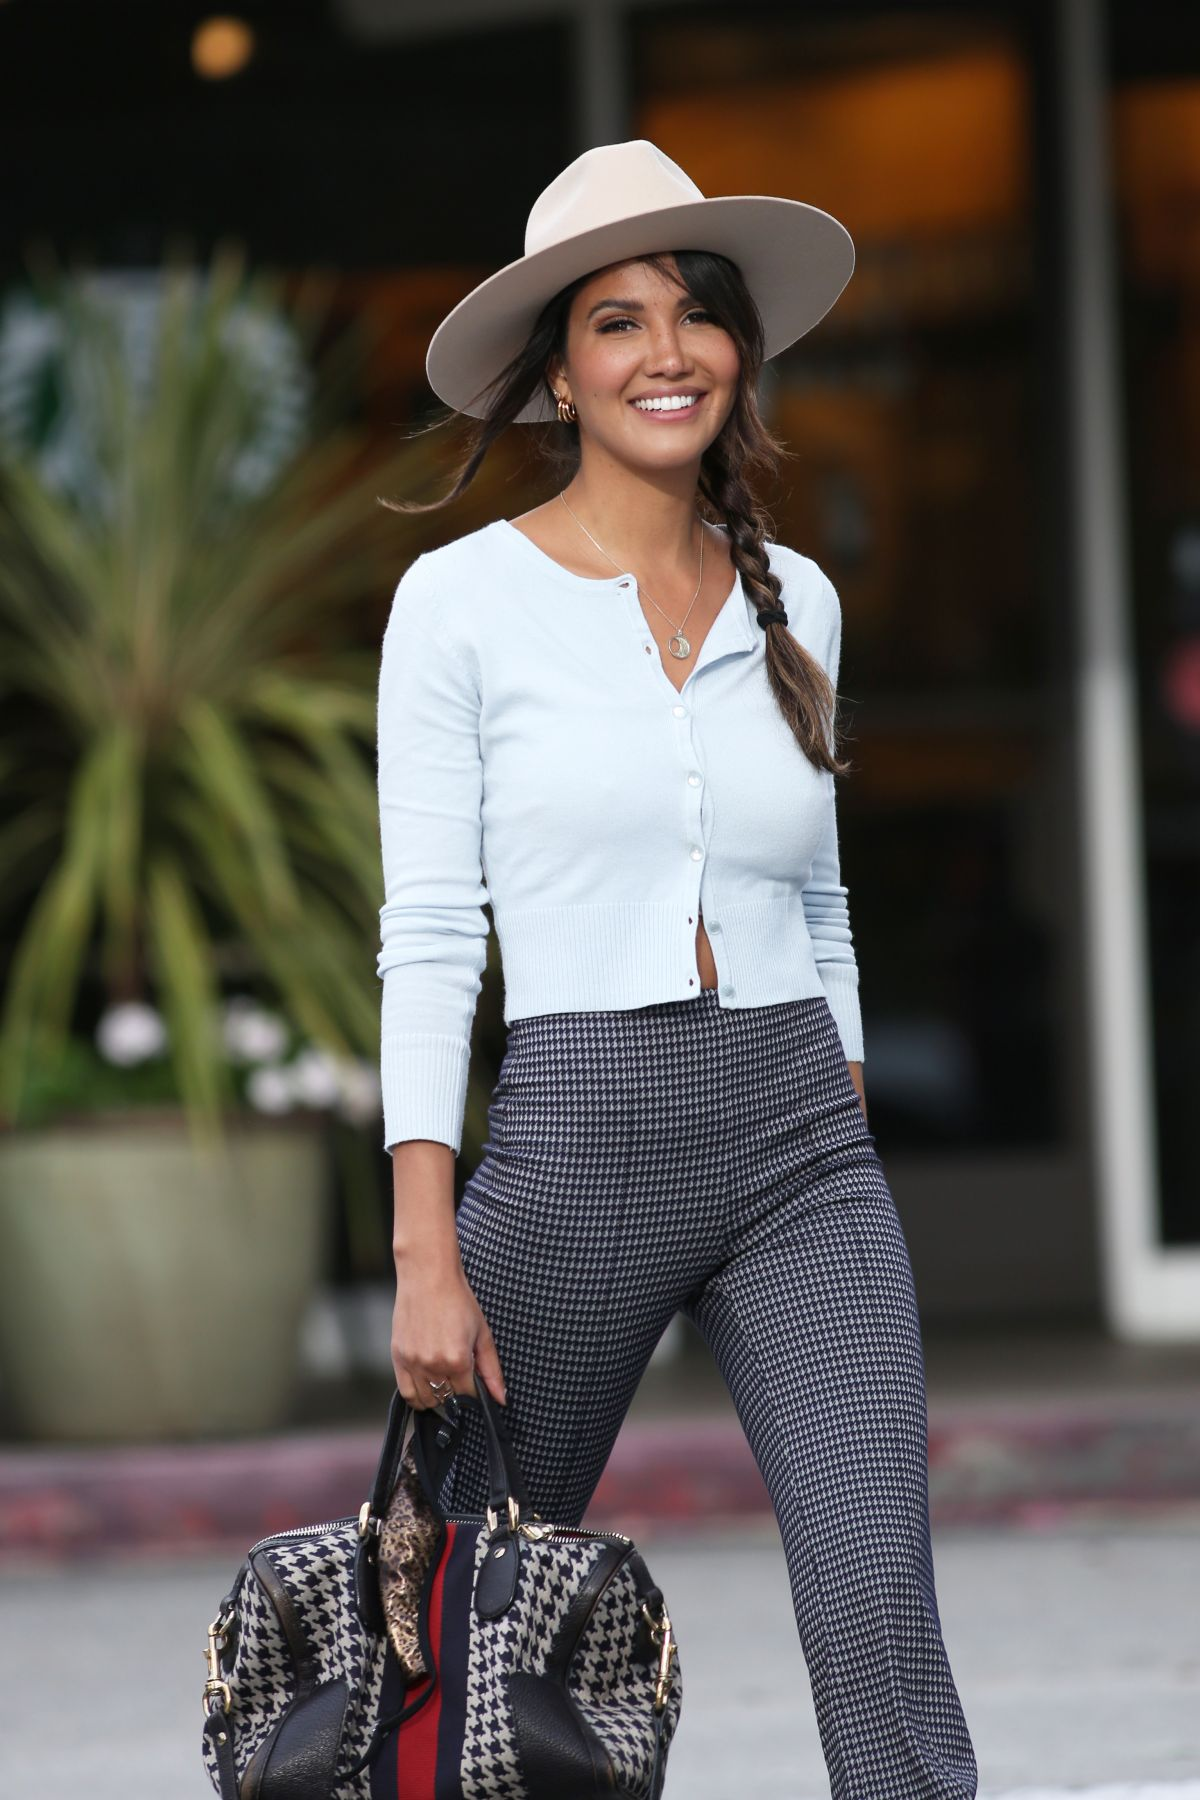 CJ Franco - Looks fashionable while out Los Angeles